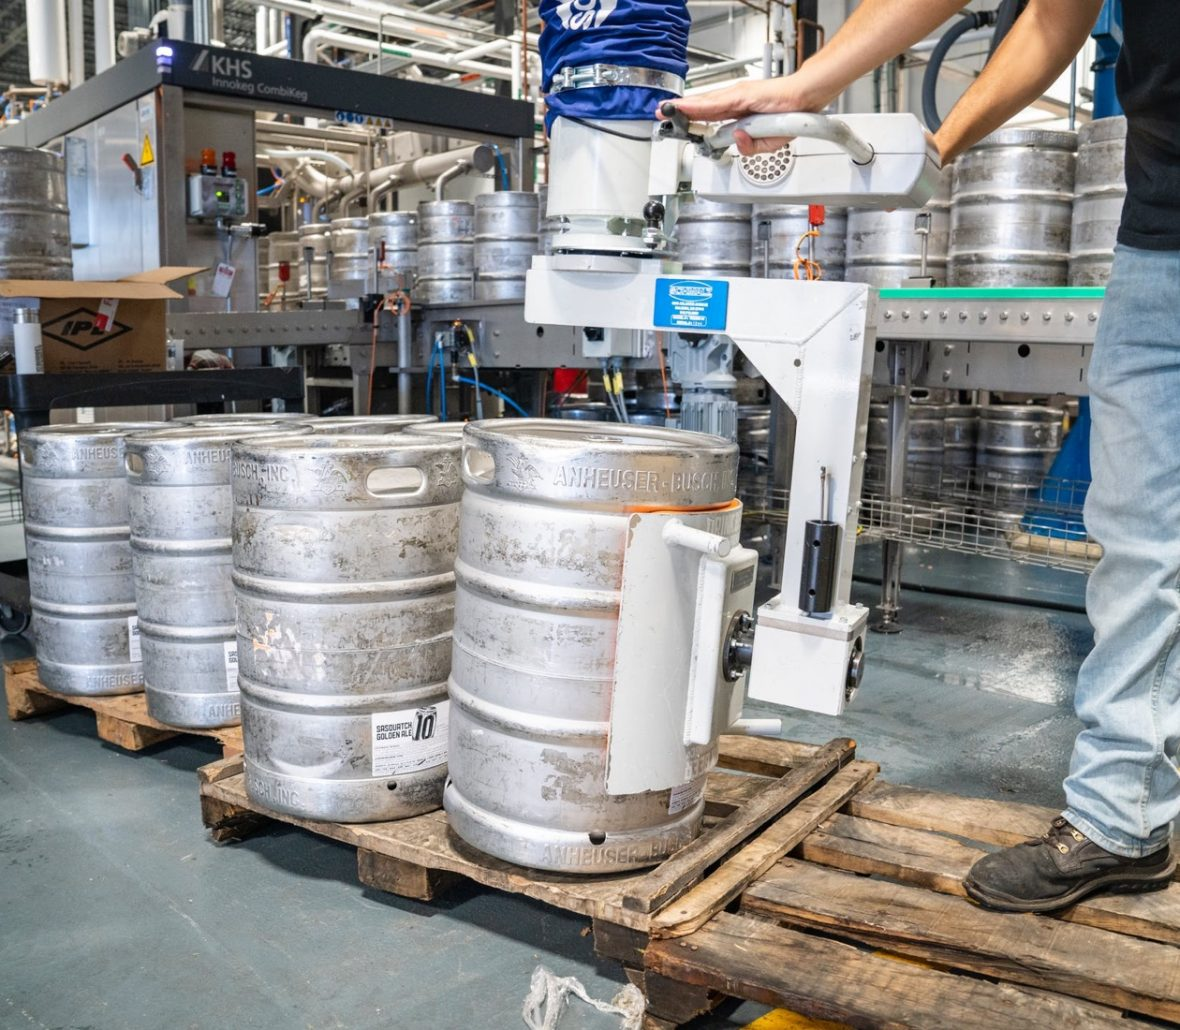 Brewer on forklift moving kegs